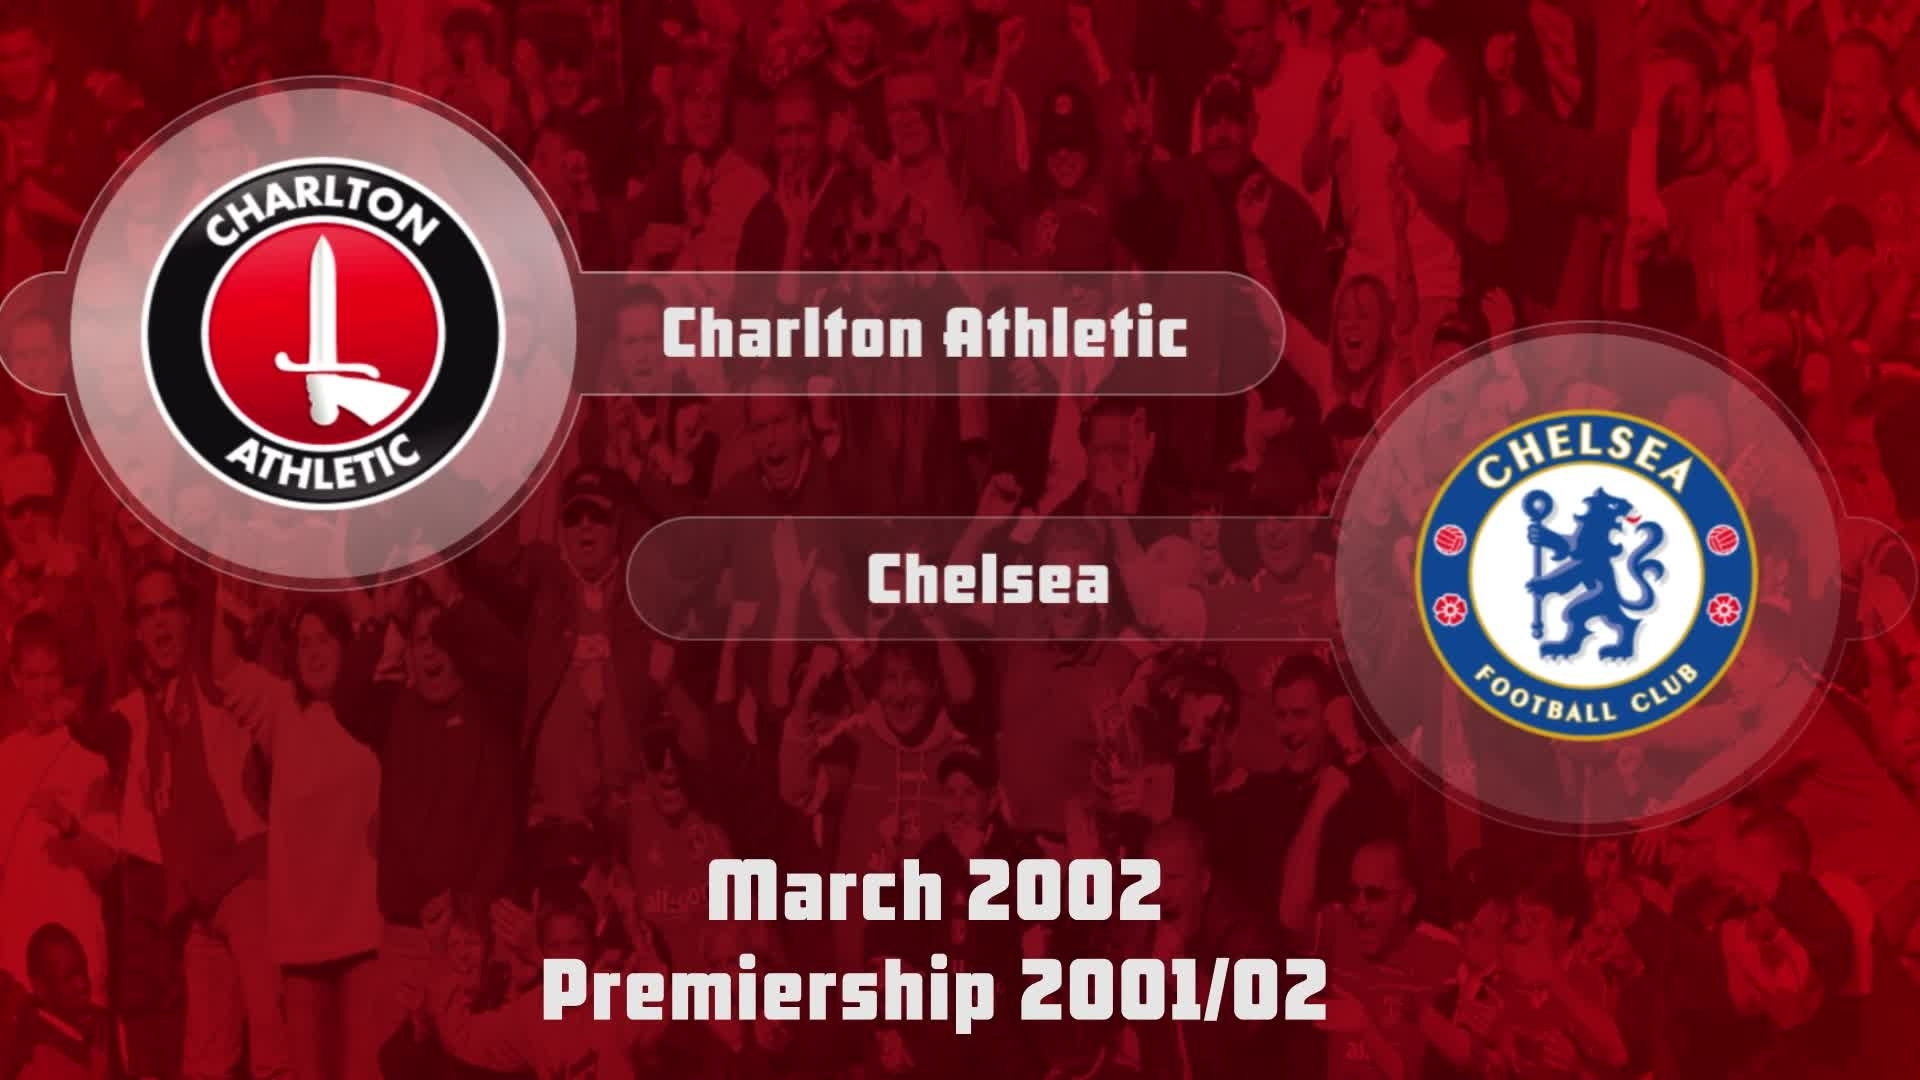 33 HIGHLIGHTS | Charlton 2 Chelsea 1 (Mar 2002)